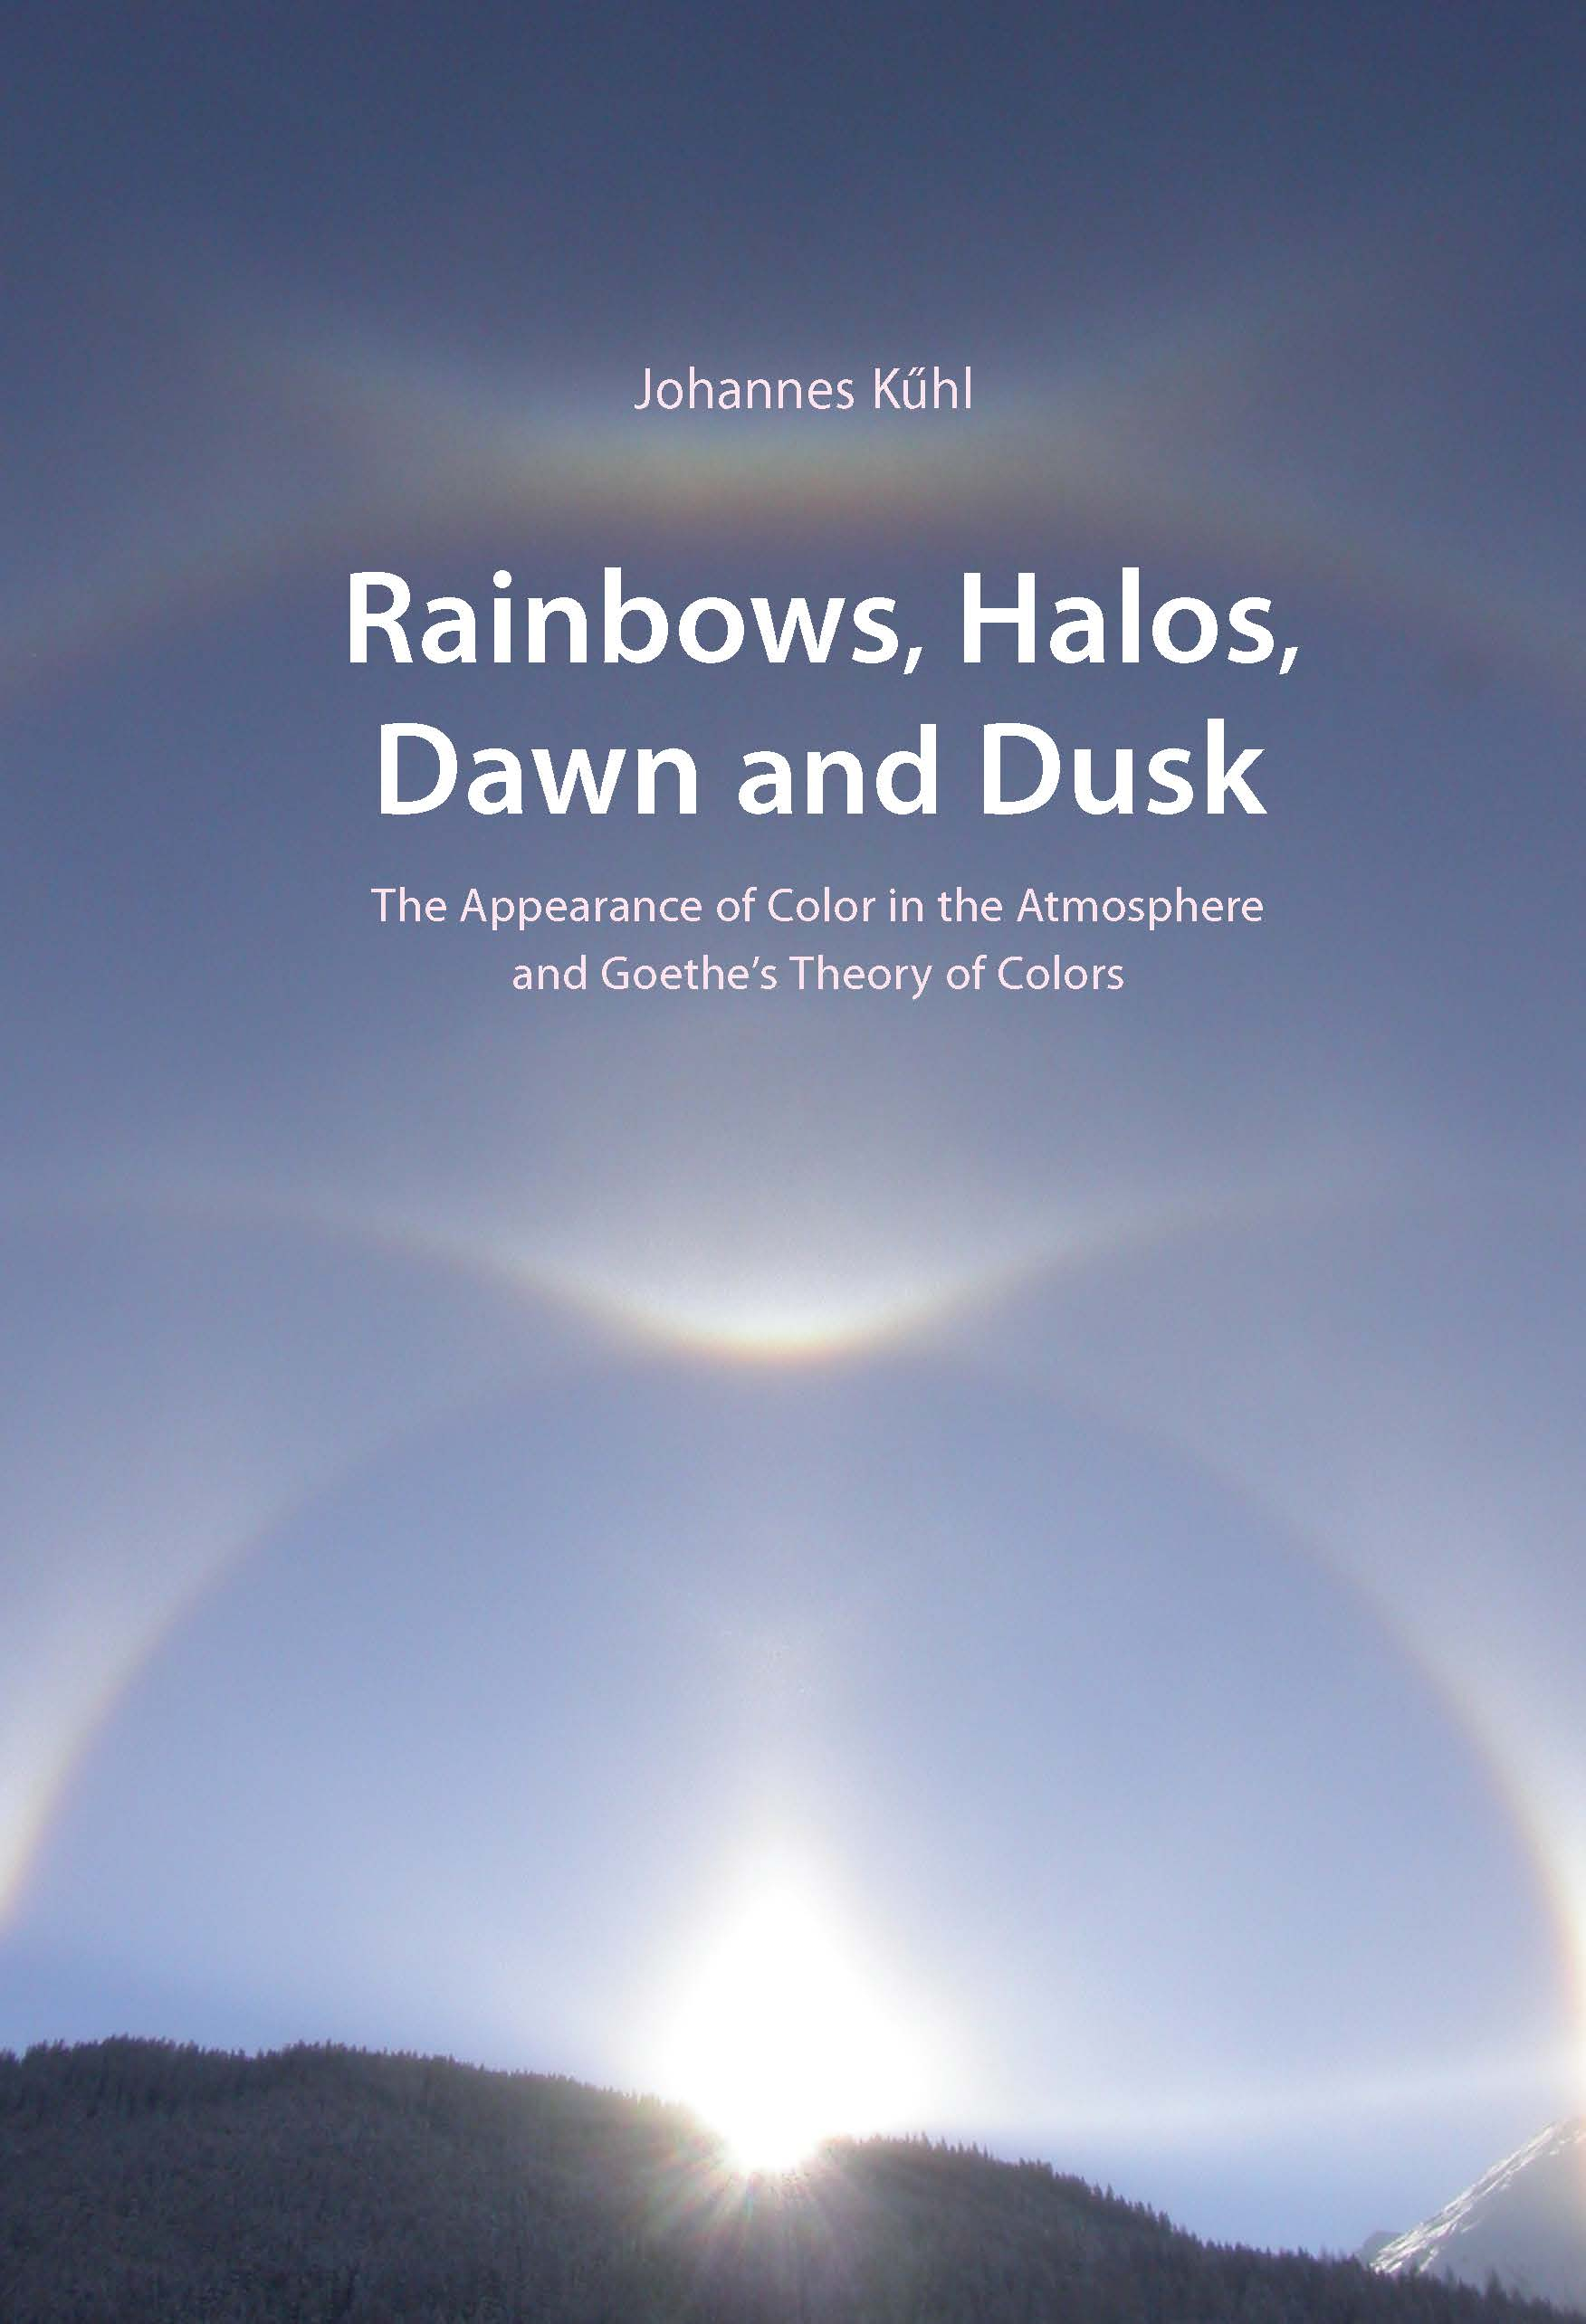 Image for <B>Rainbows, Halos, Dawn and Dusk </B><I> Atmospheric Colours and Goethe's Colour Theory</I>